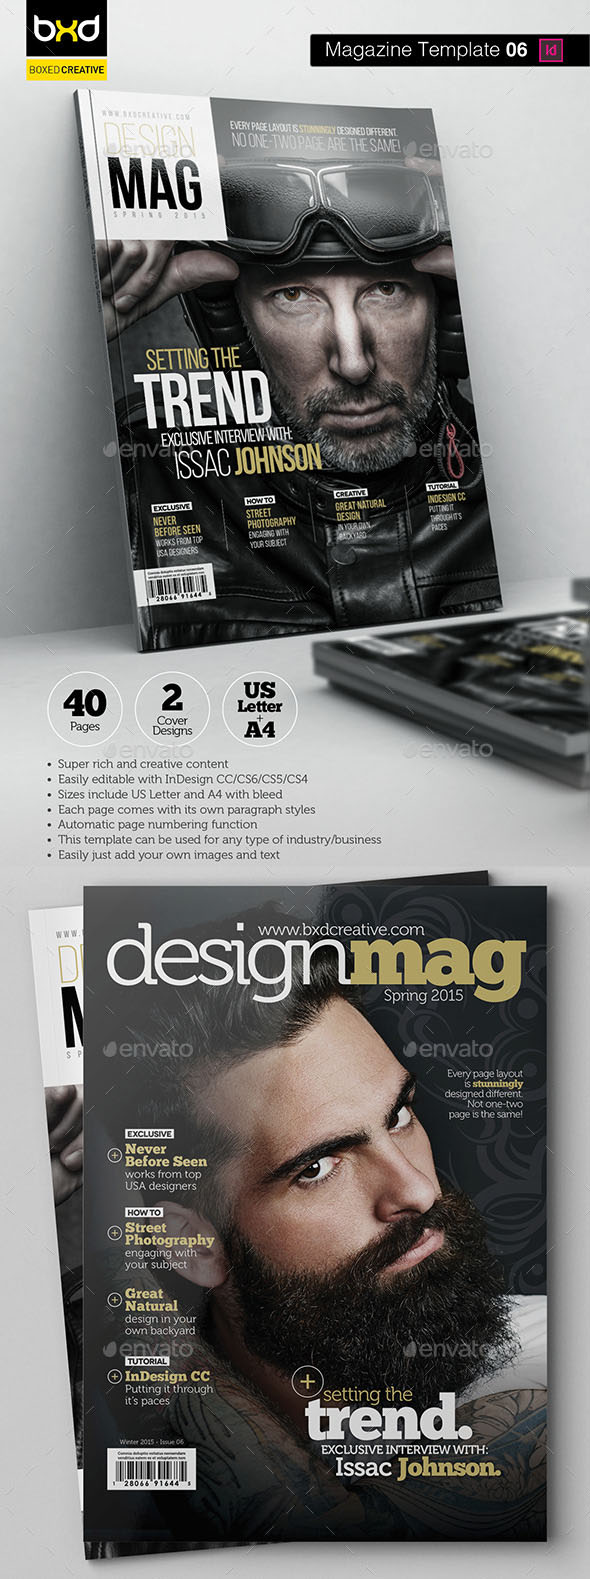 62 Best Magazine Cover Templates And Mockups 2018 Psd Indesign